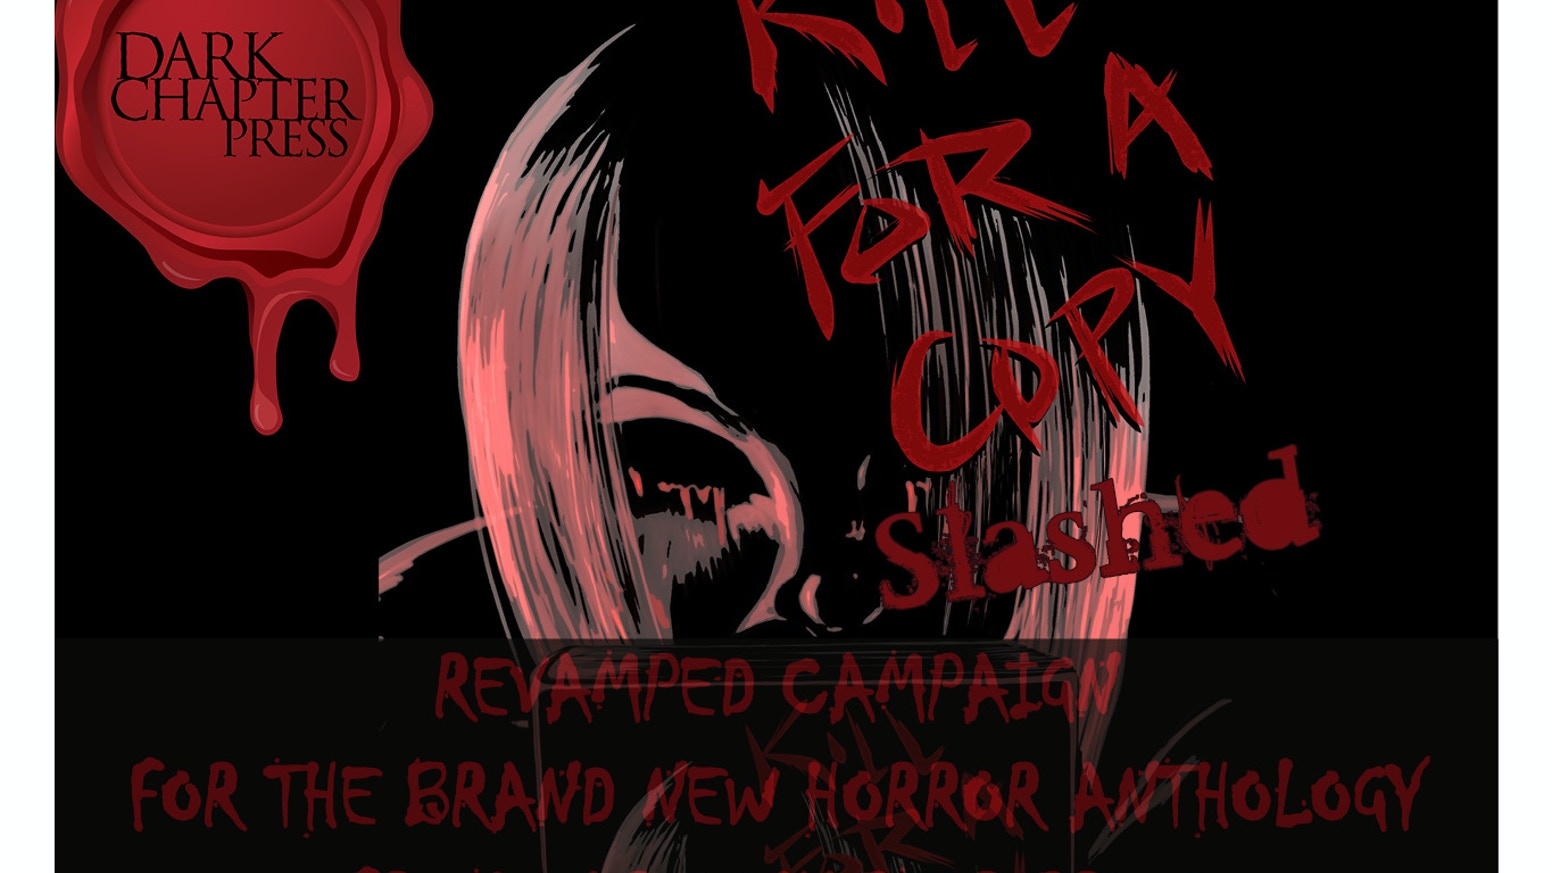 Revamped campaign with drastically reduced goal, to launch Kill For A Copy, the new horror anthology from Dark Chapter Press